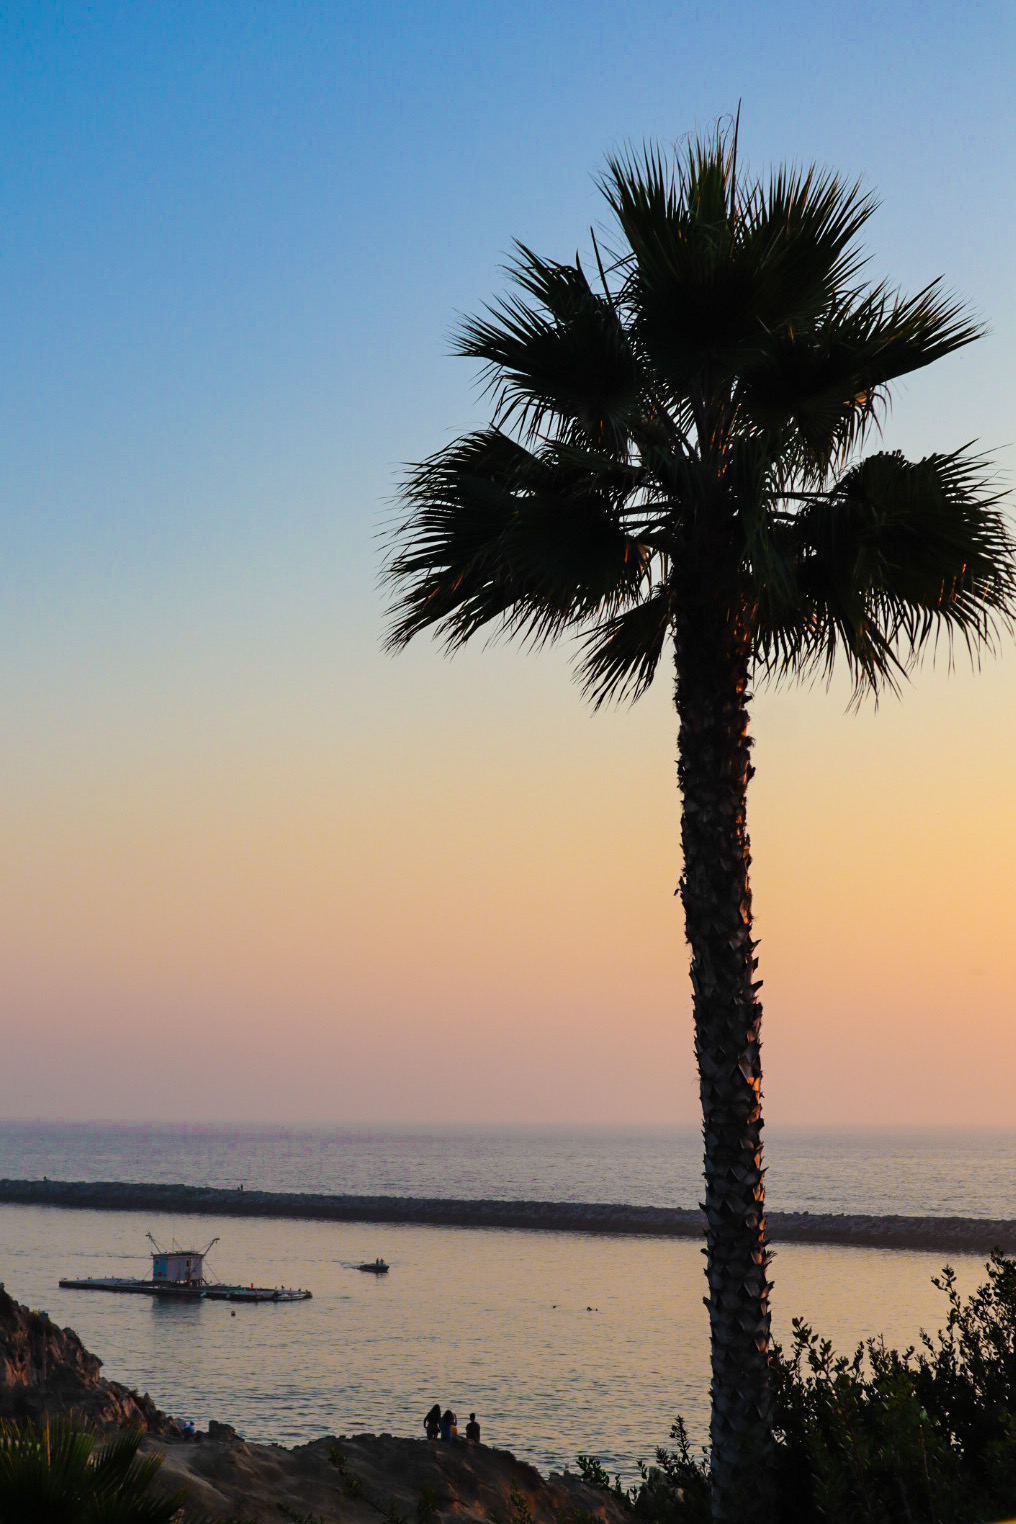 A palm tree by a California beach at sunset